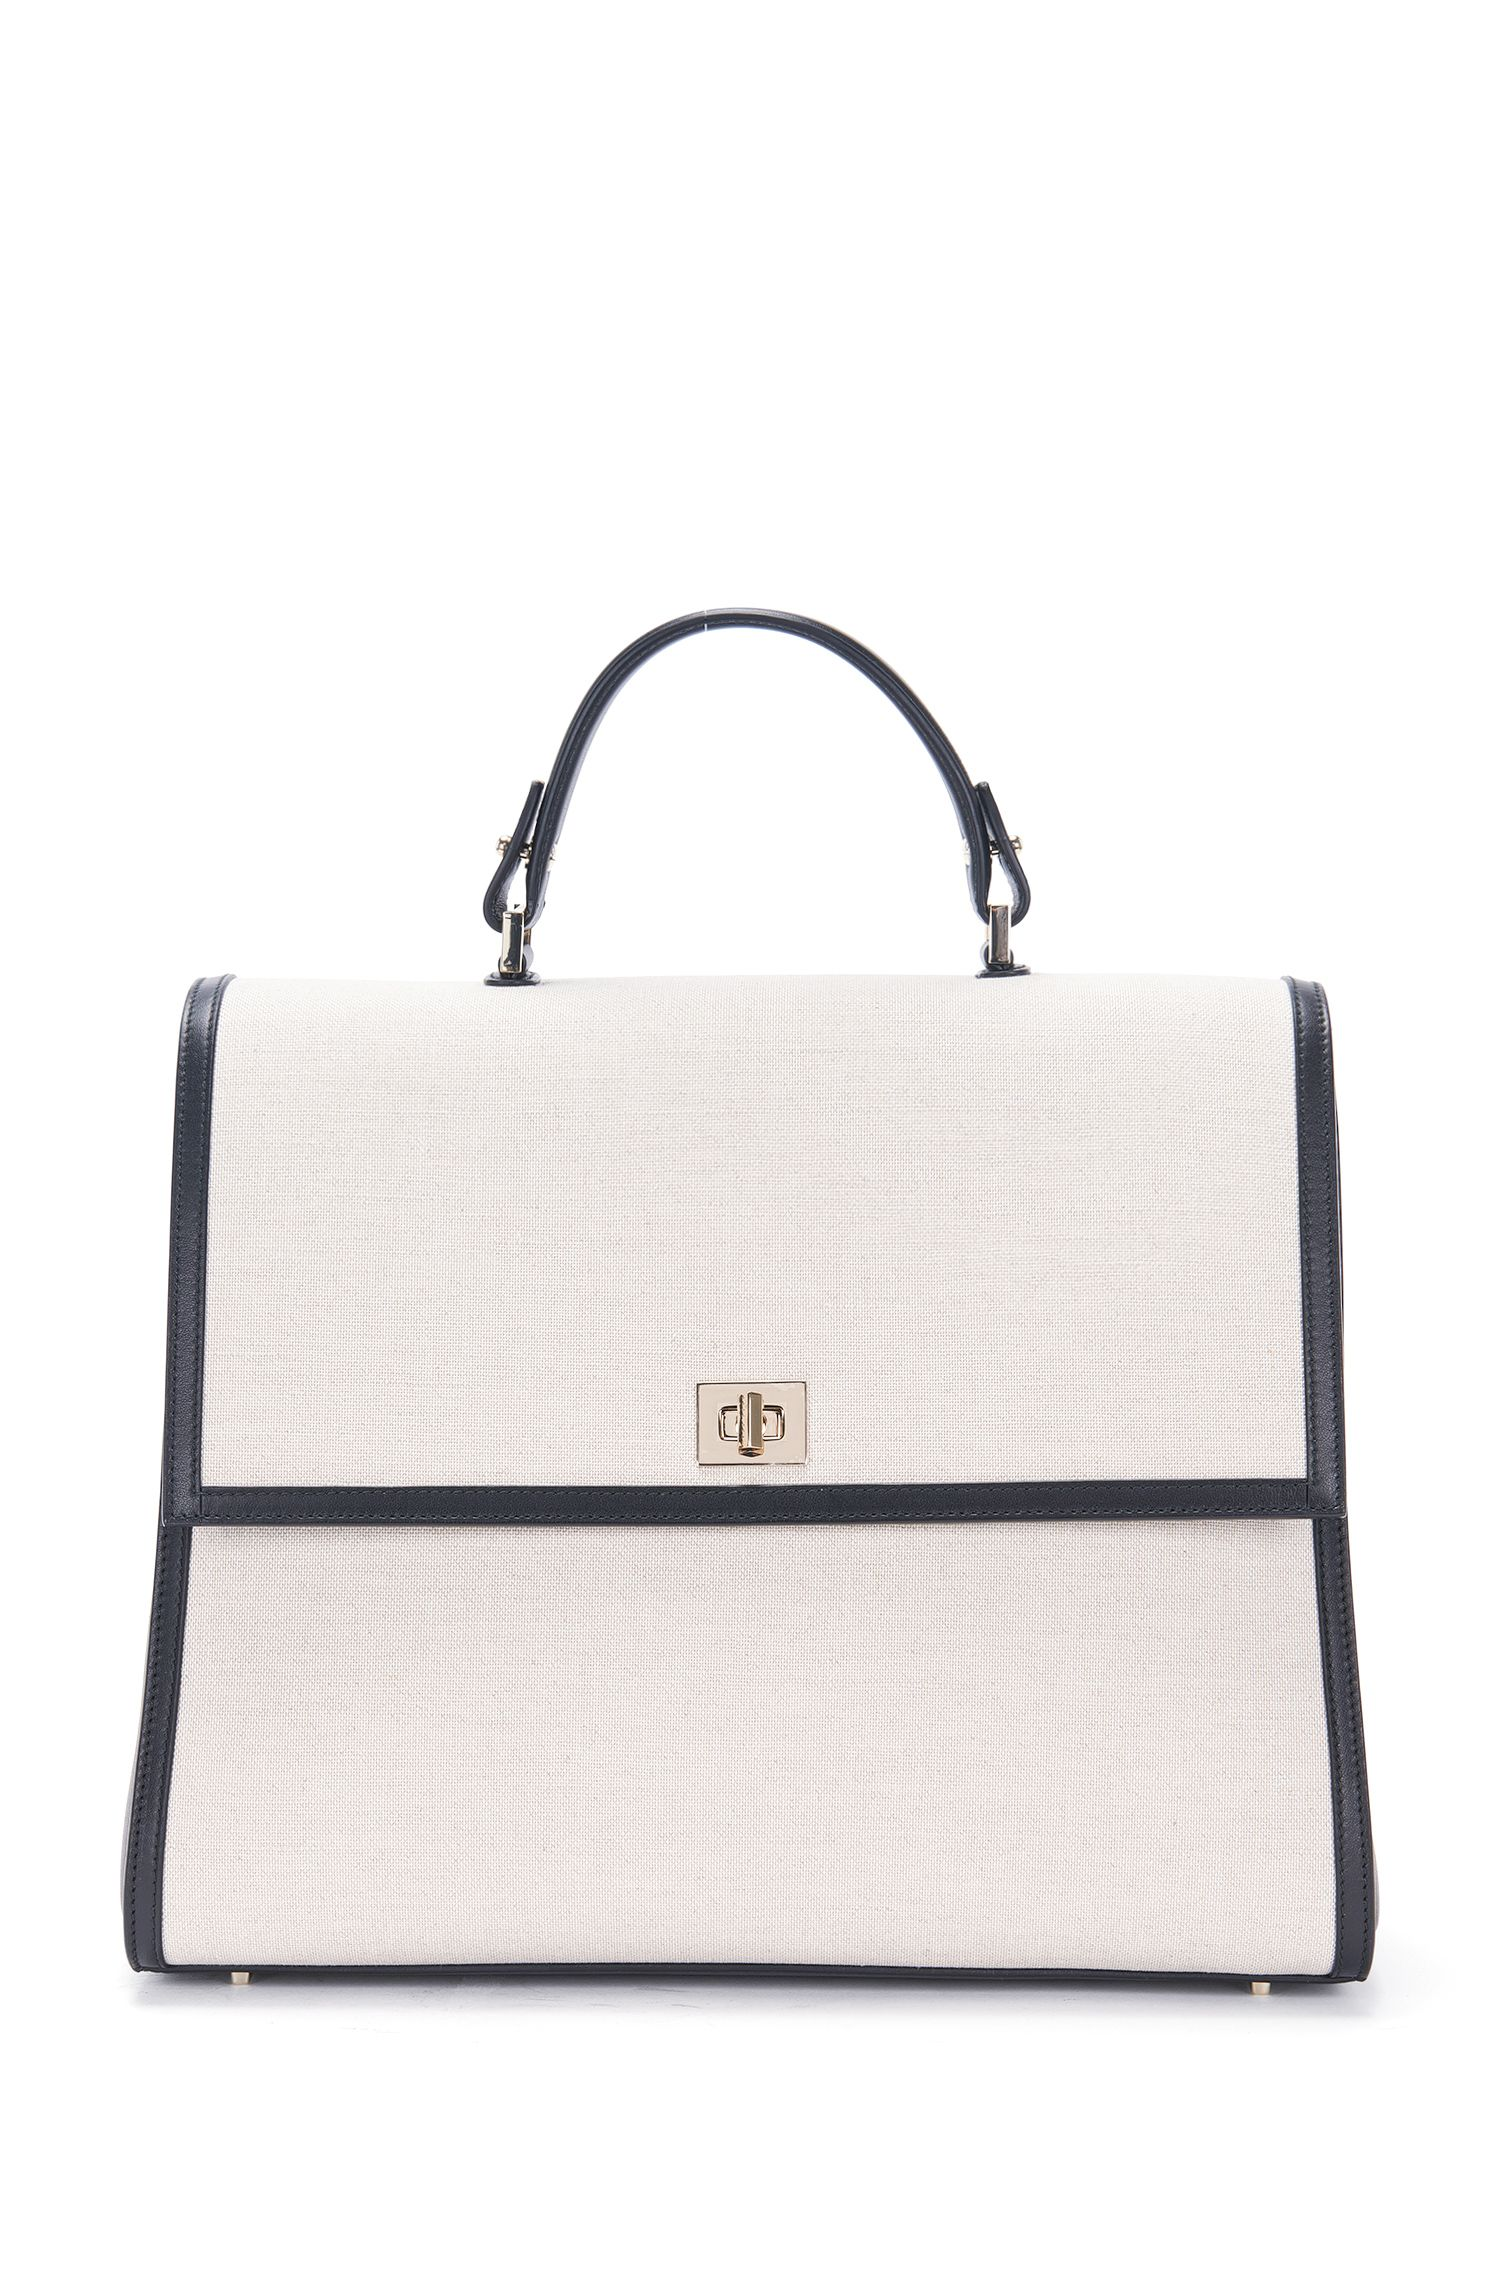 Leather-Trimmed Cotton-Linen Handbag | BOSS Bespoke TH M SC, Natural